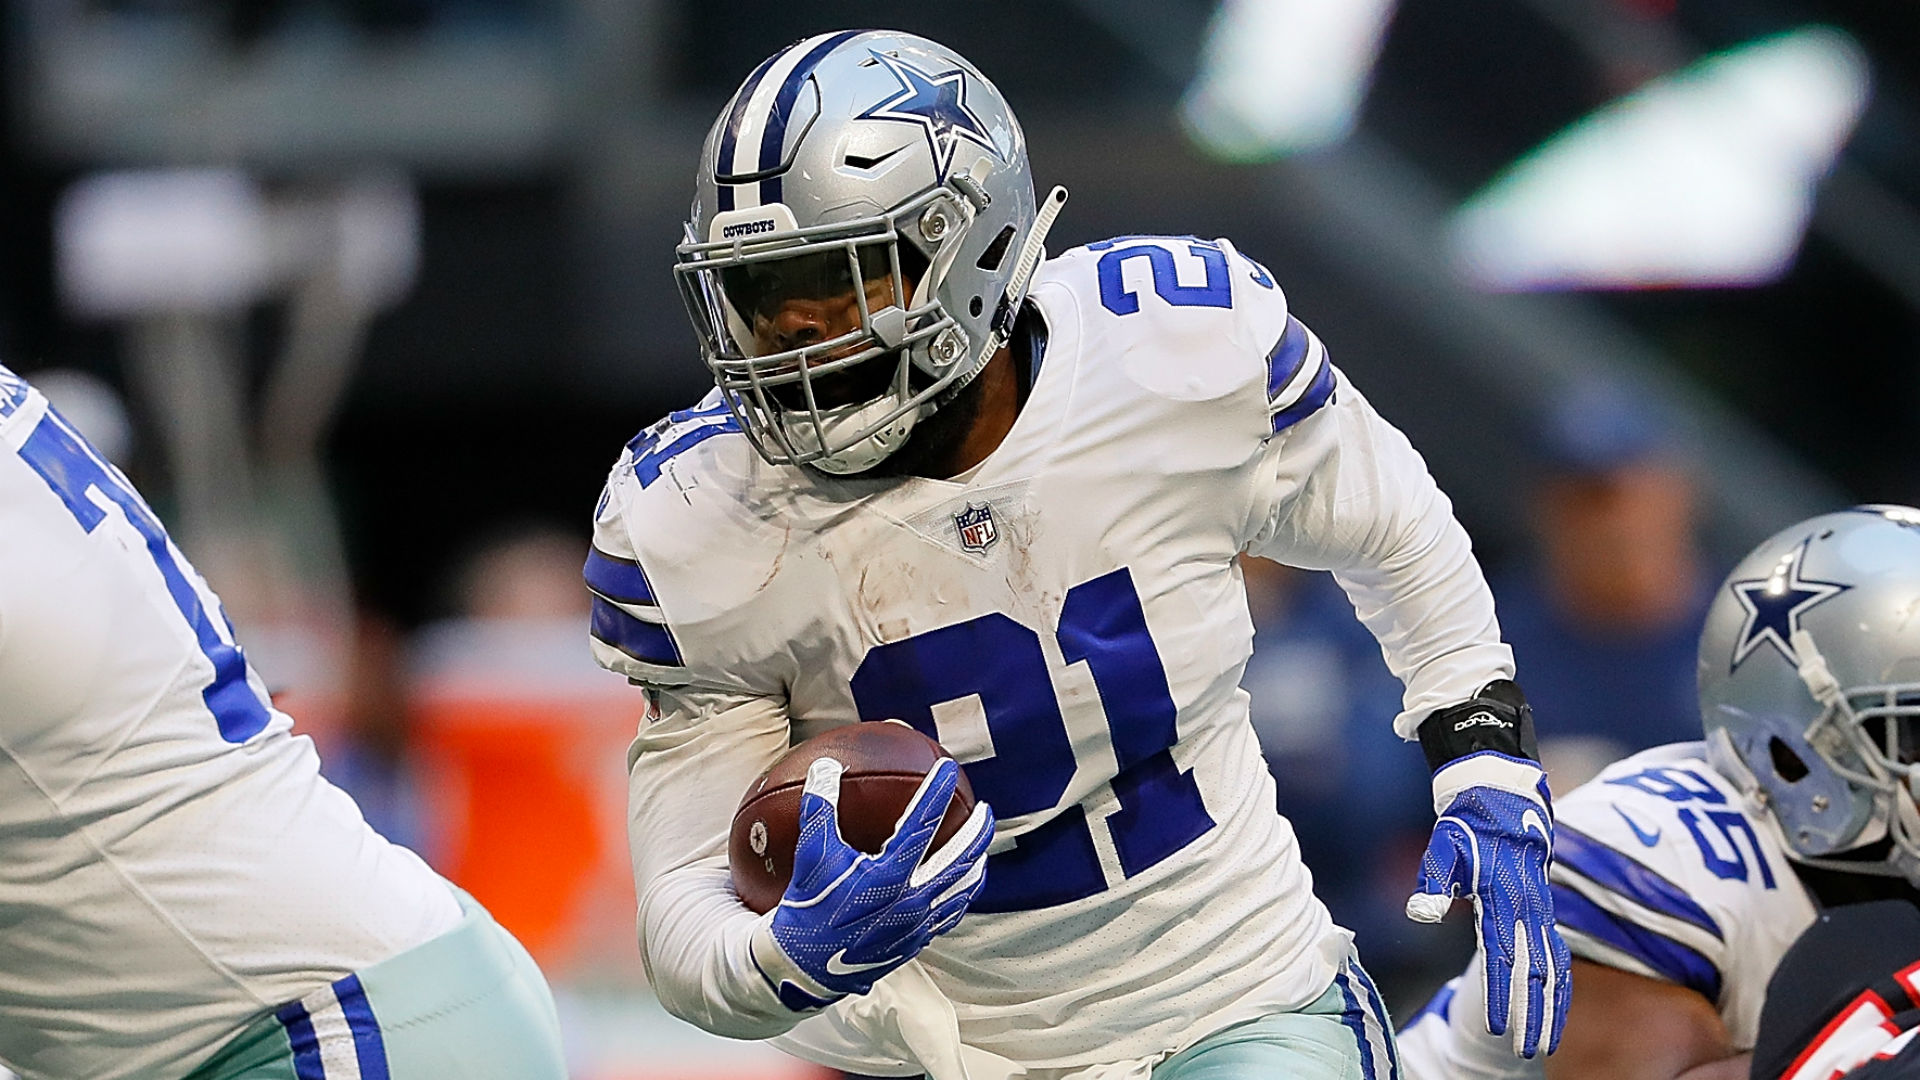 Nfl Nfl Playoff Picture Cowboys Get Into First Place